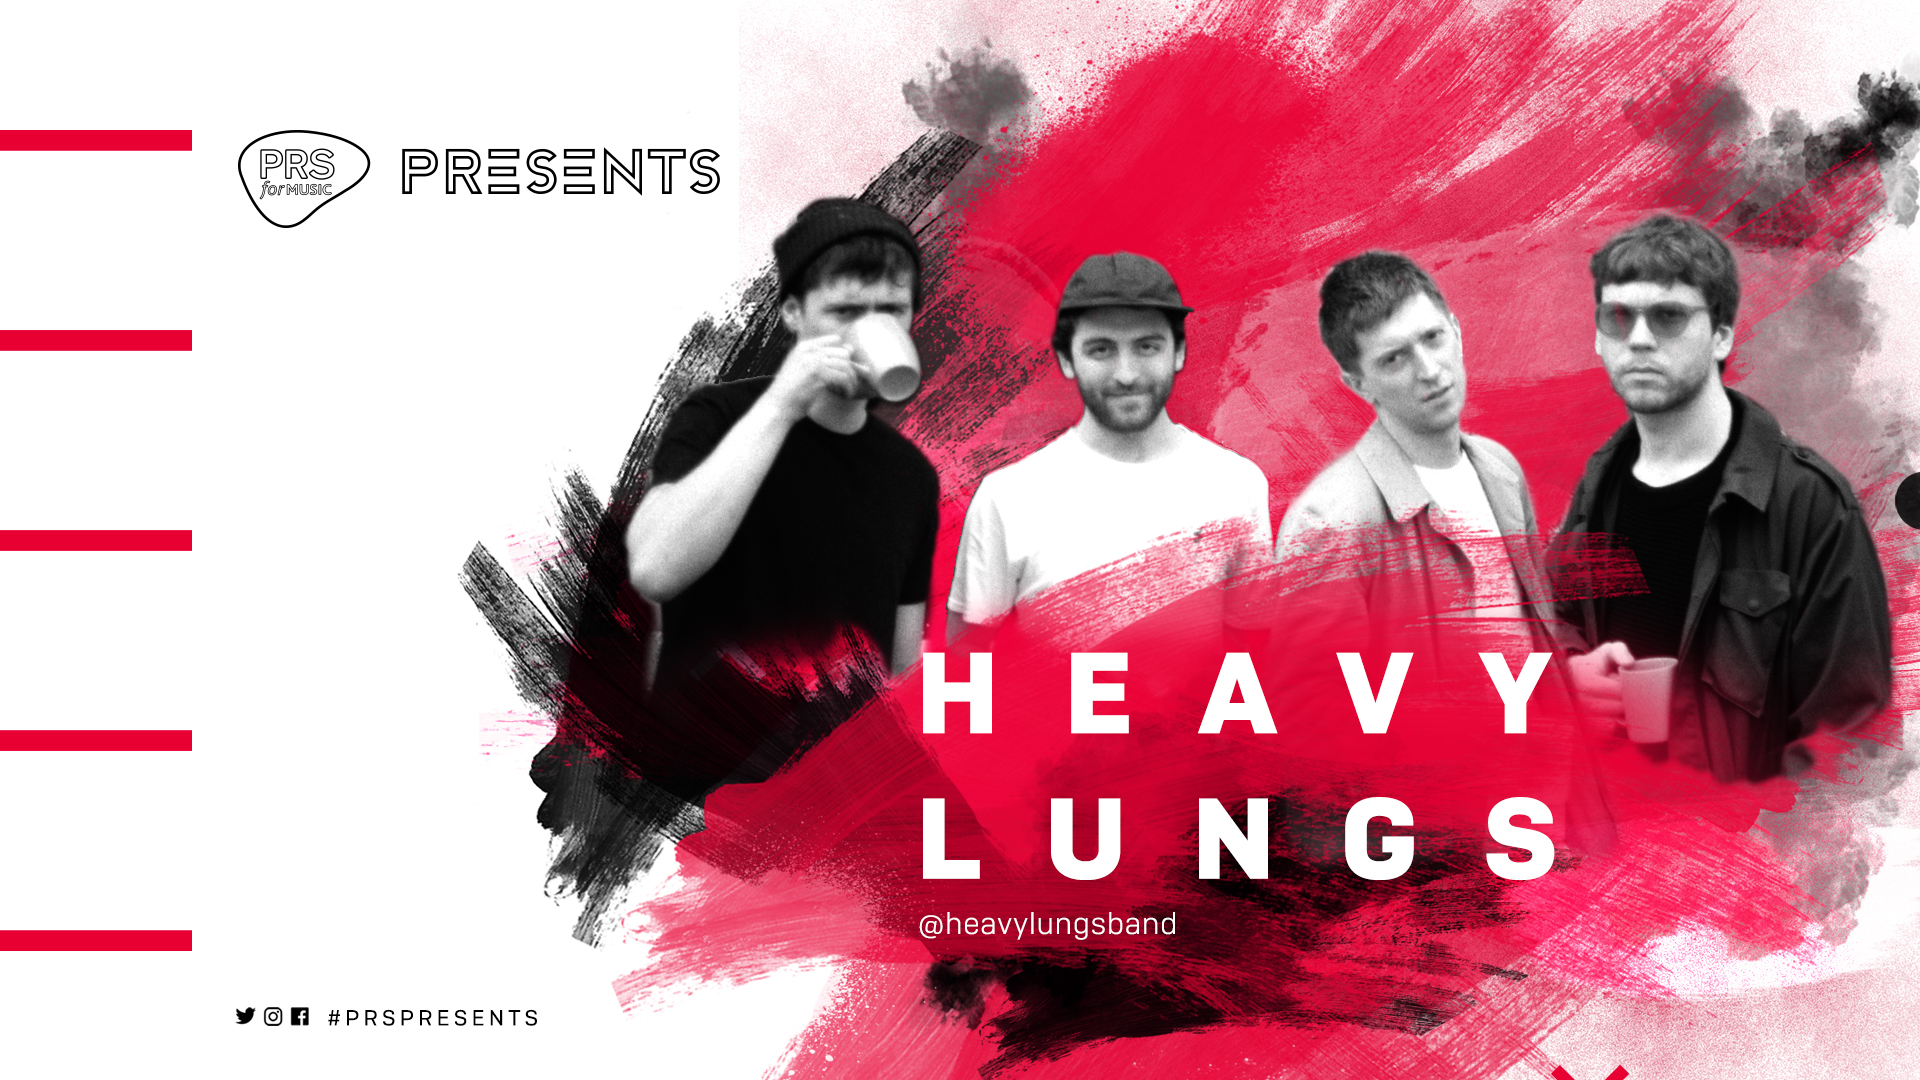 Heavy lungs image